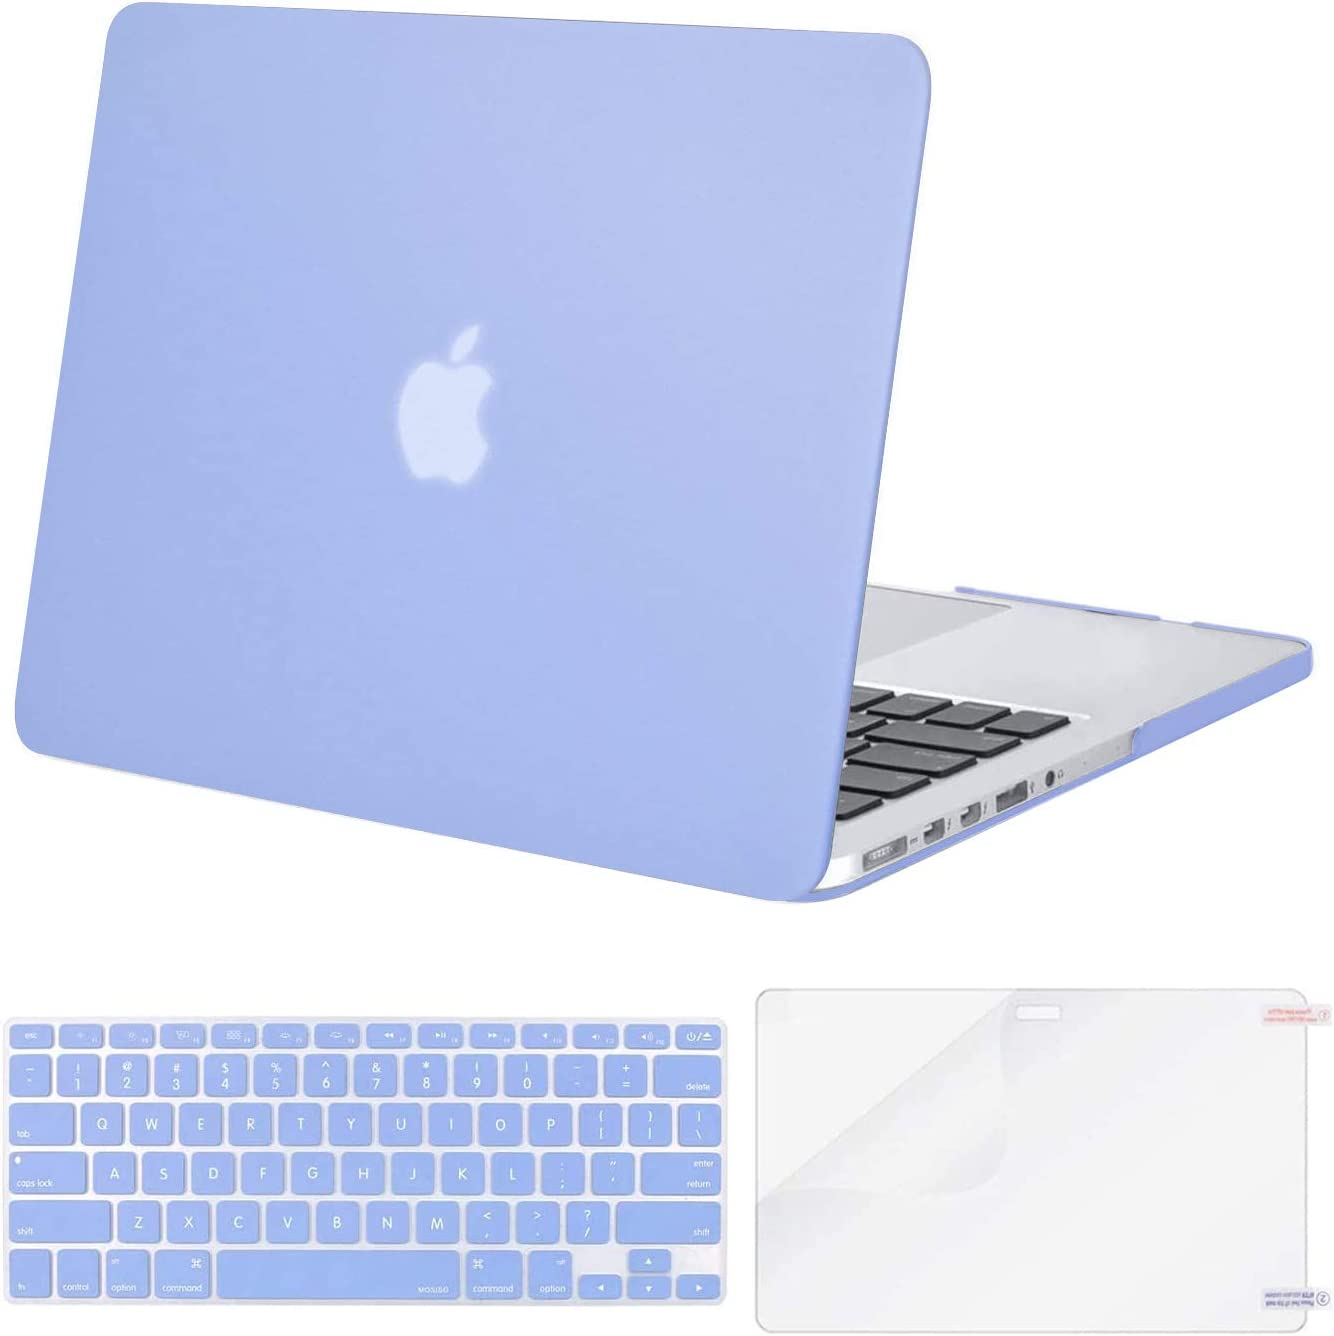 MOSISO Case Only Compatible with Older Version MacBook Pro Retina 13 inch (Models: A1502 & A1425) (Release 2015 - end 2012), Plastic Hard Shell Case & Keyboard Cover & Screen Protector, Serenity Blue